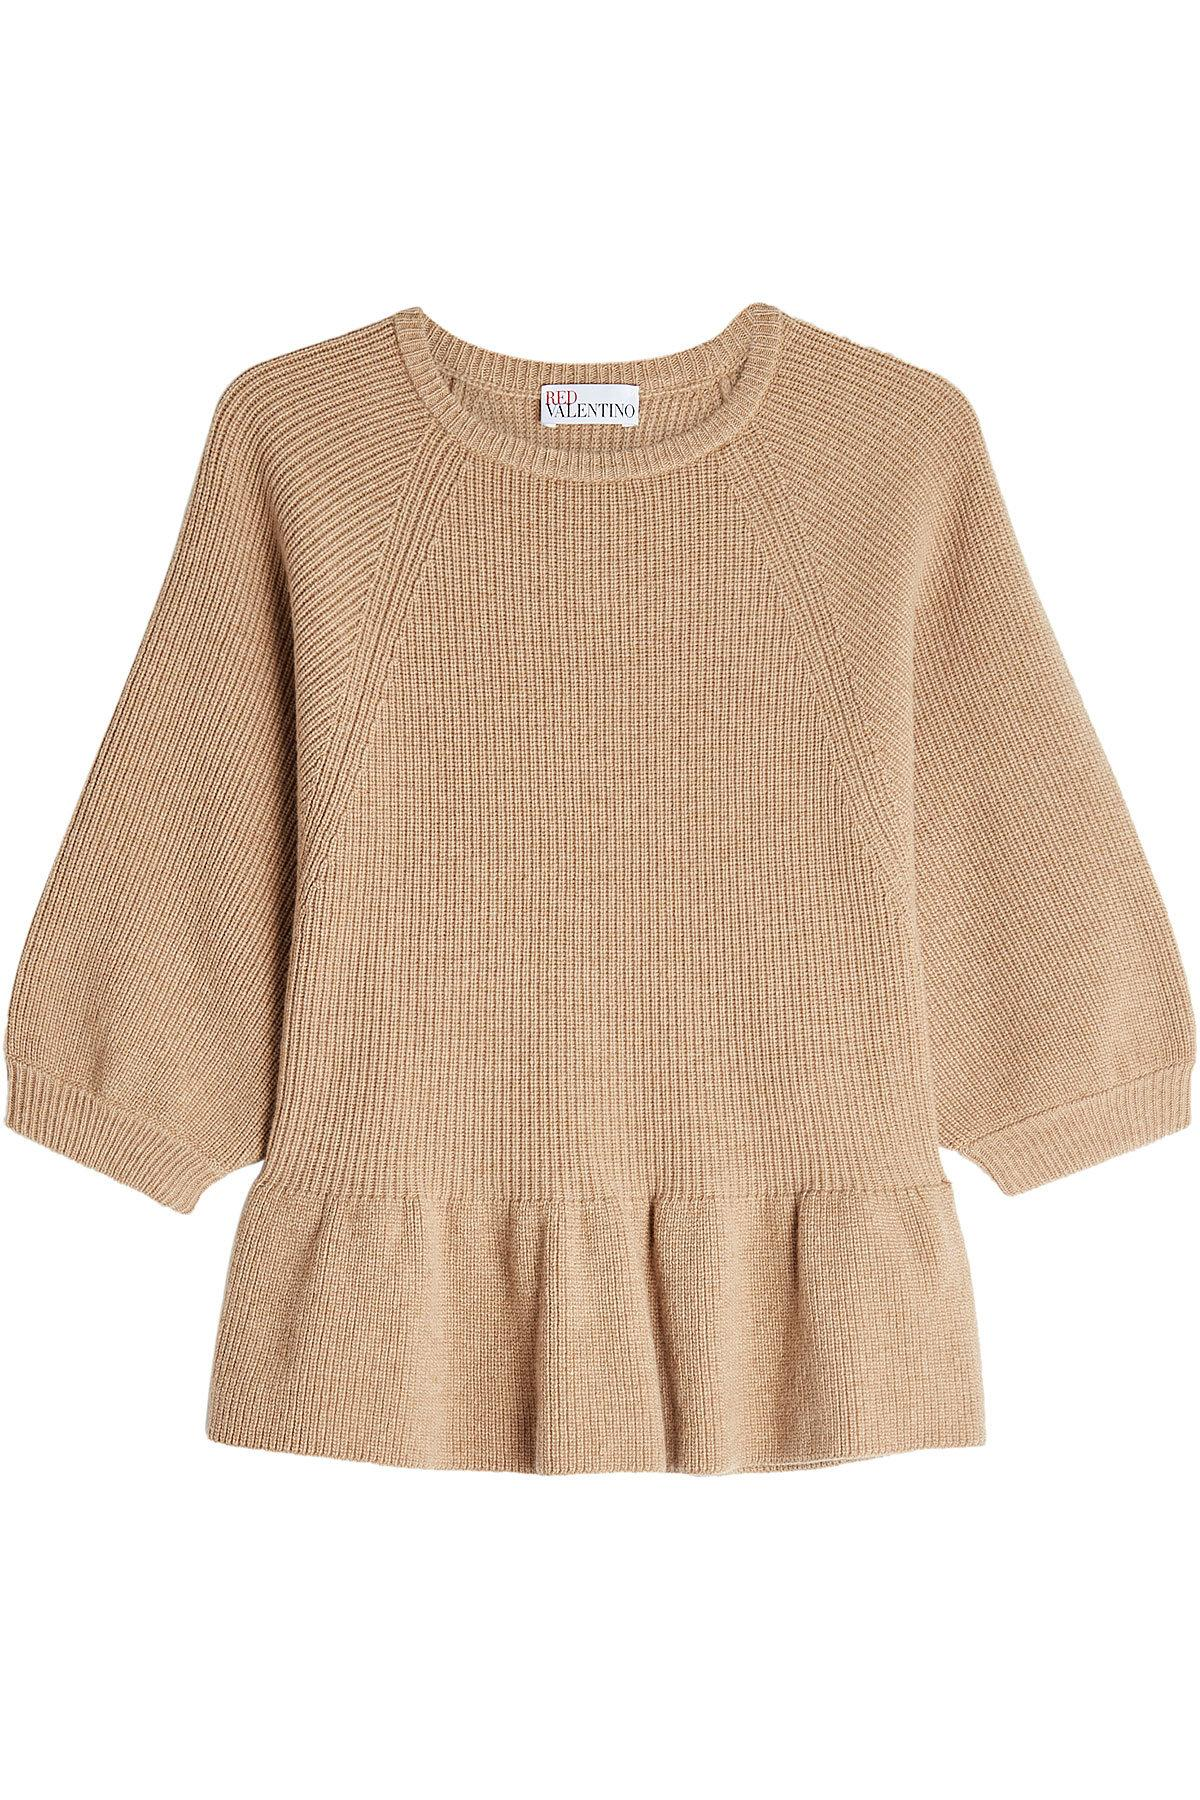 Red Valentino Wool Pullover With Flared Hem In Beige